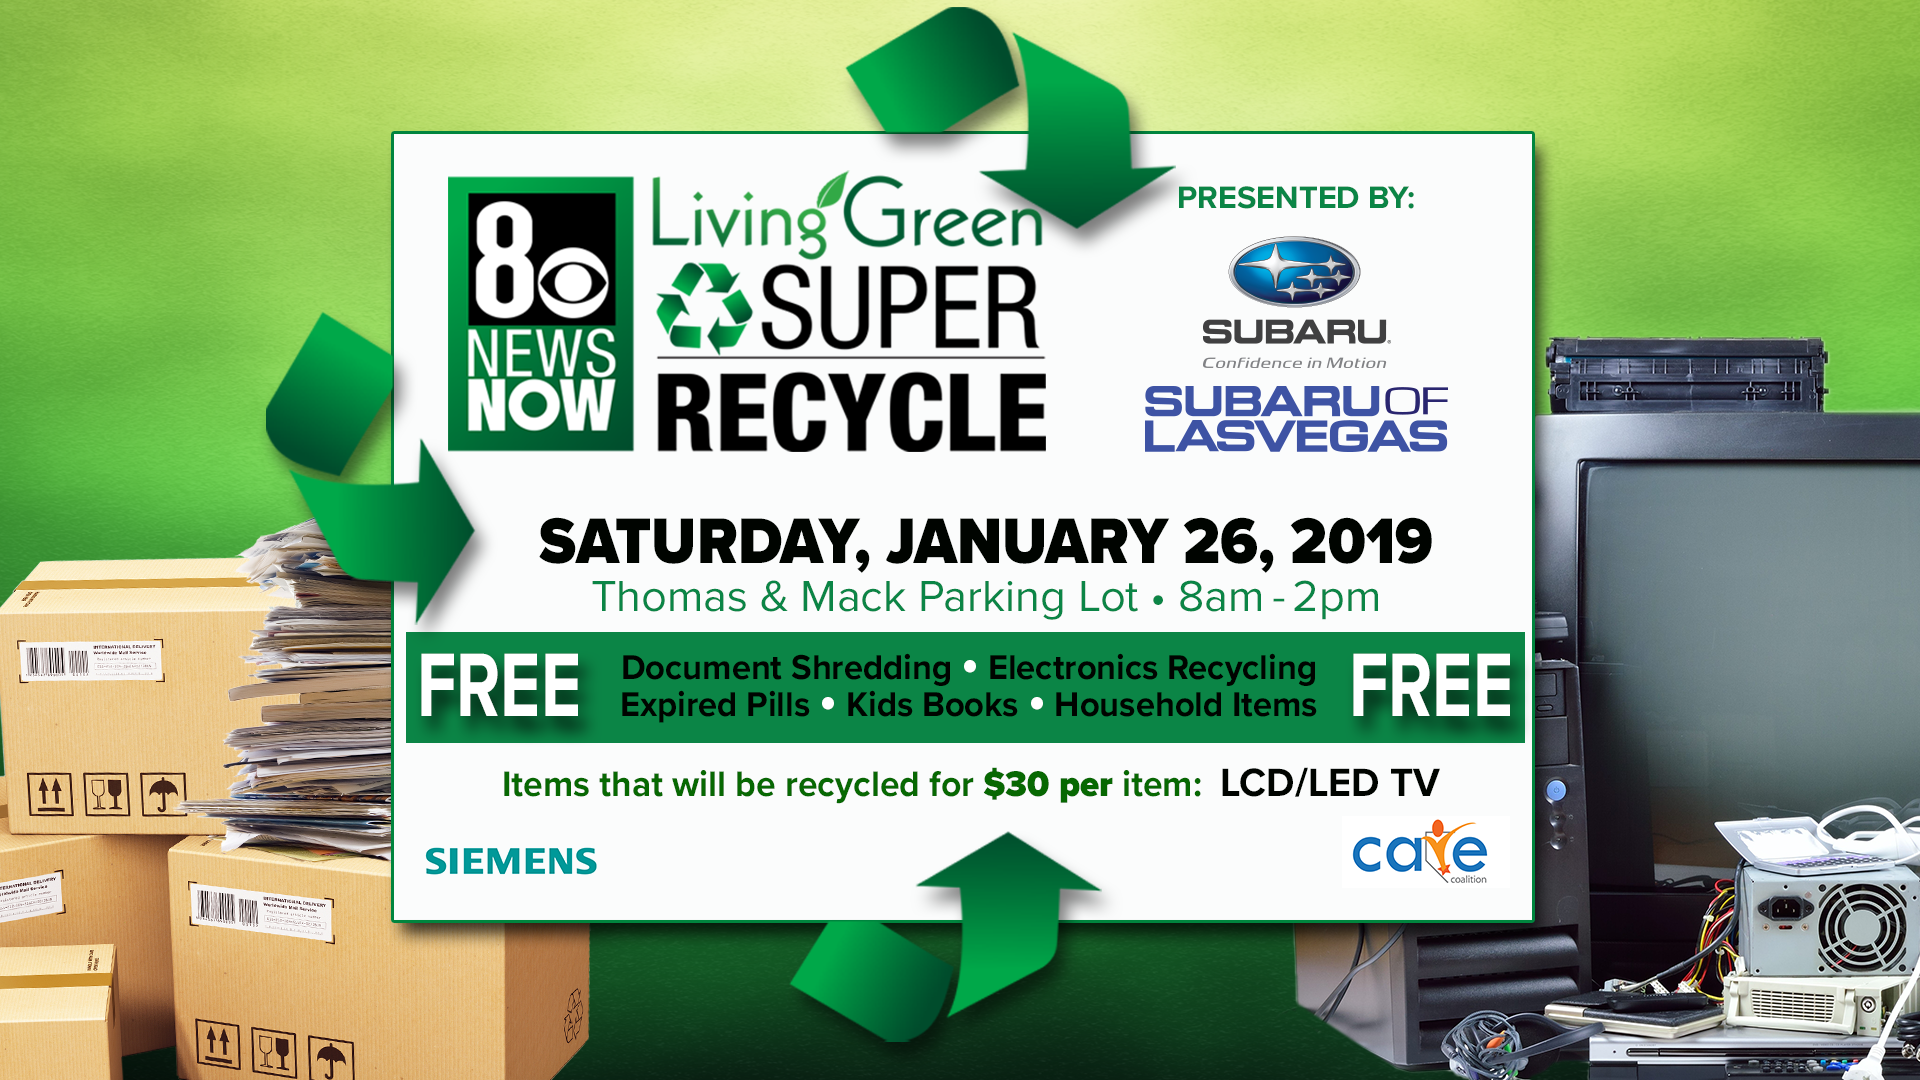 Super Recycle 2019 FS_1548430359149.png.jpg